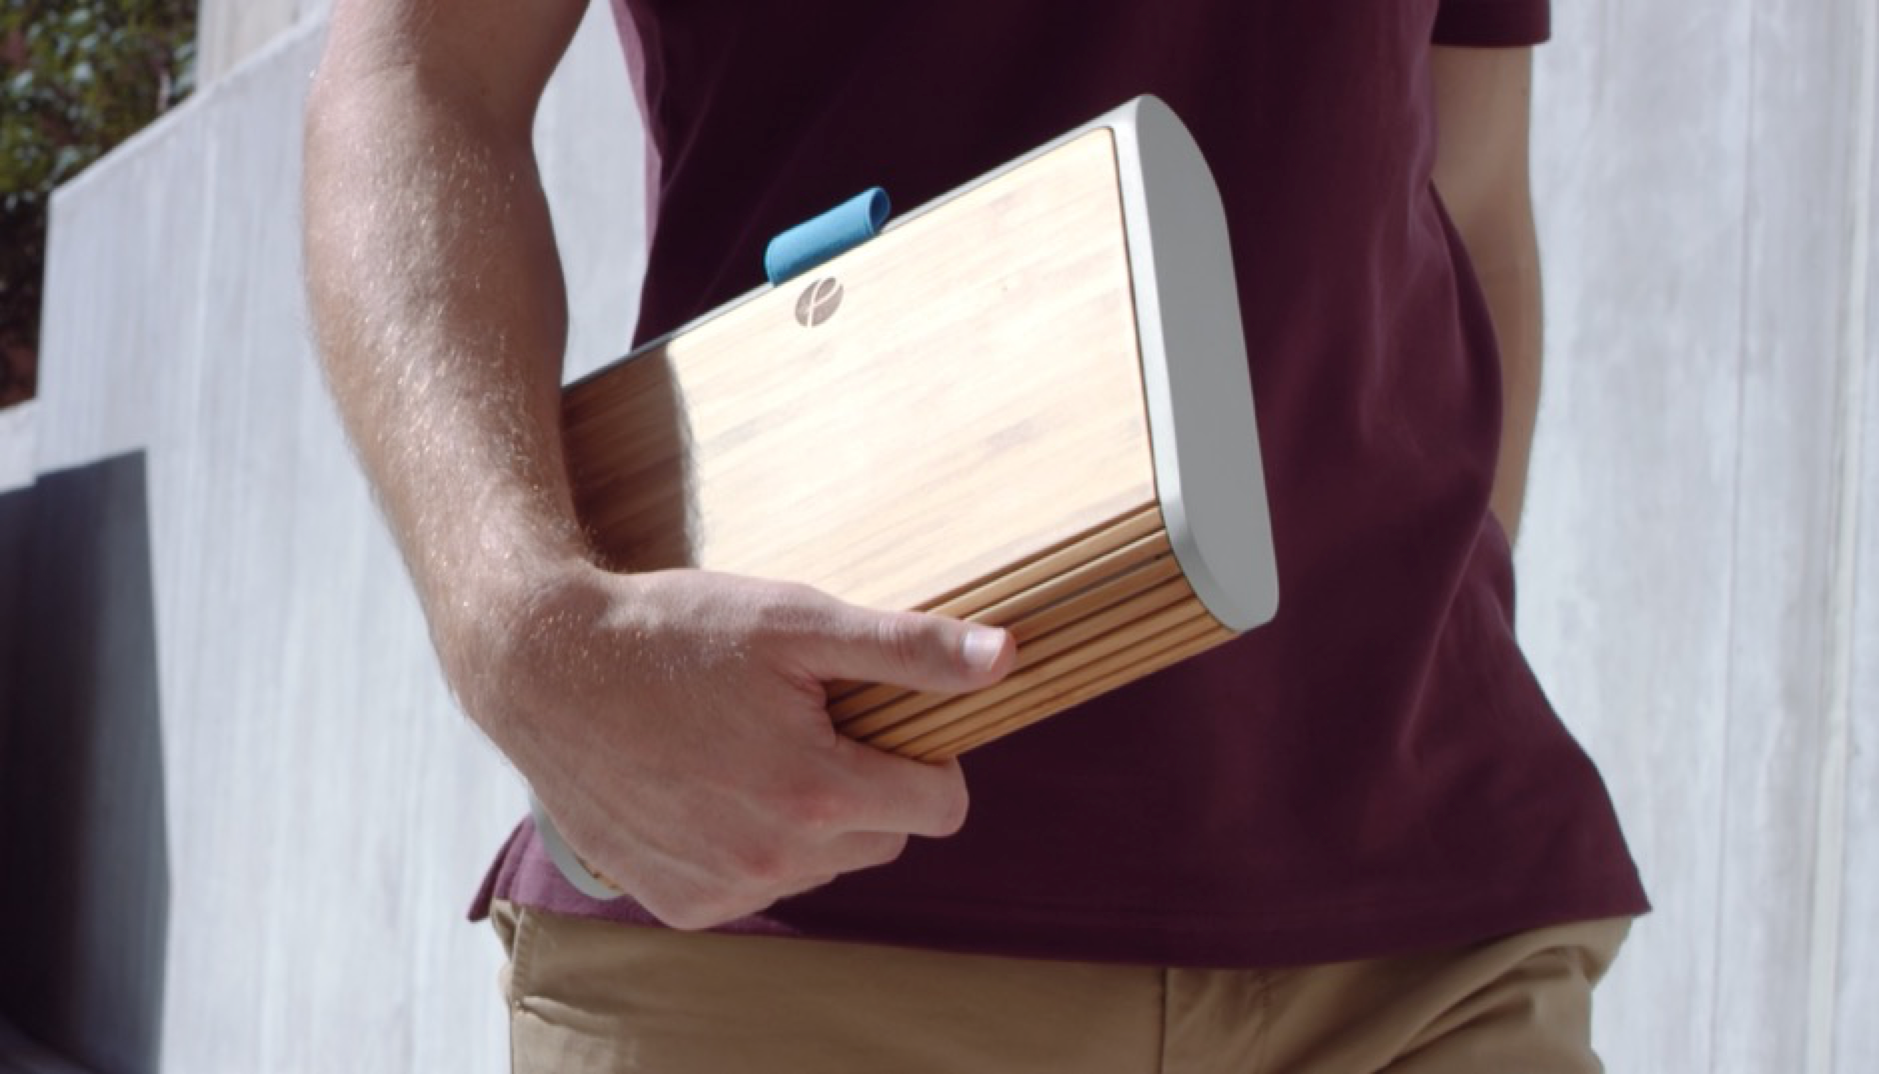 Slimline, stylish and durable, each Prepd Pack is handcrafted from high-quality, natural bamboo. The case has a secure enclosure that keeps everything that keeps everything in place.